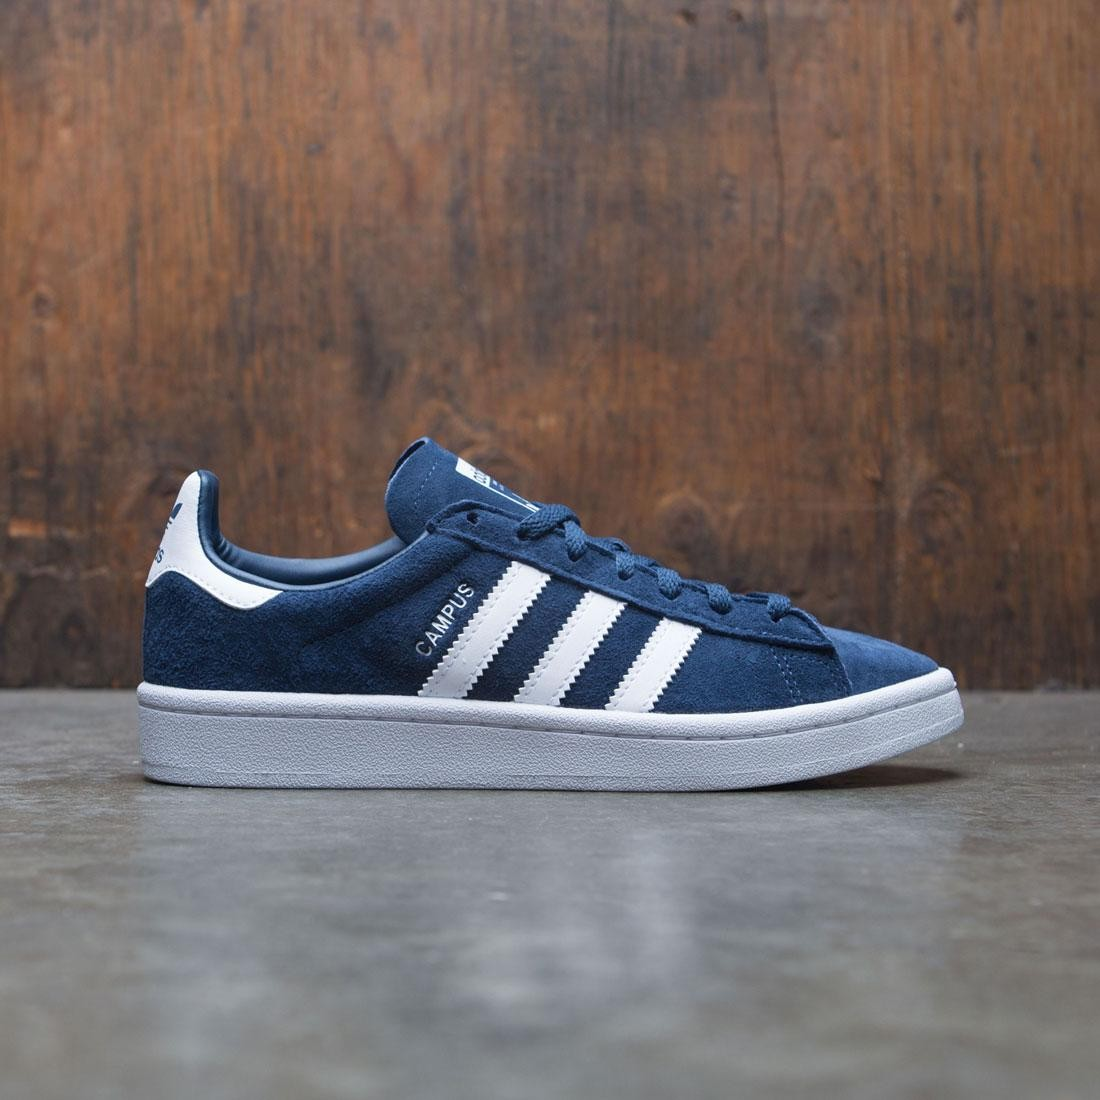 adidas adidas Campus Womens Sneakers Mineral Blue/White clearance from china wholesale price for sale discount from china best for sale outlet store locations jEzWz8CEli